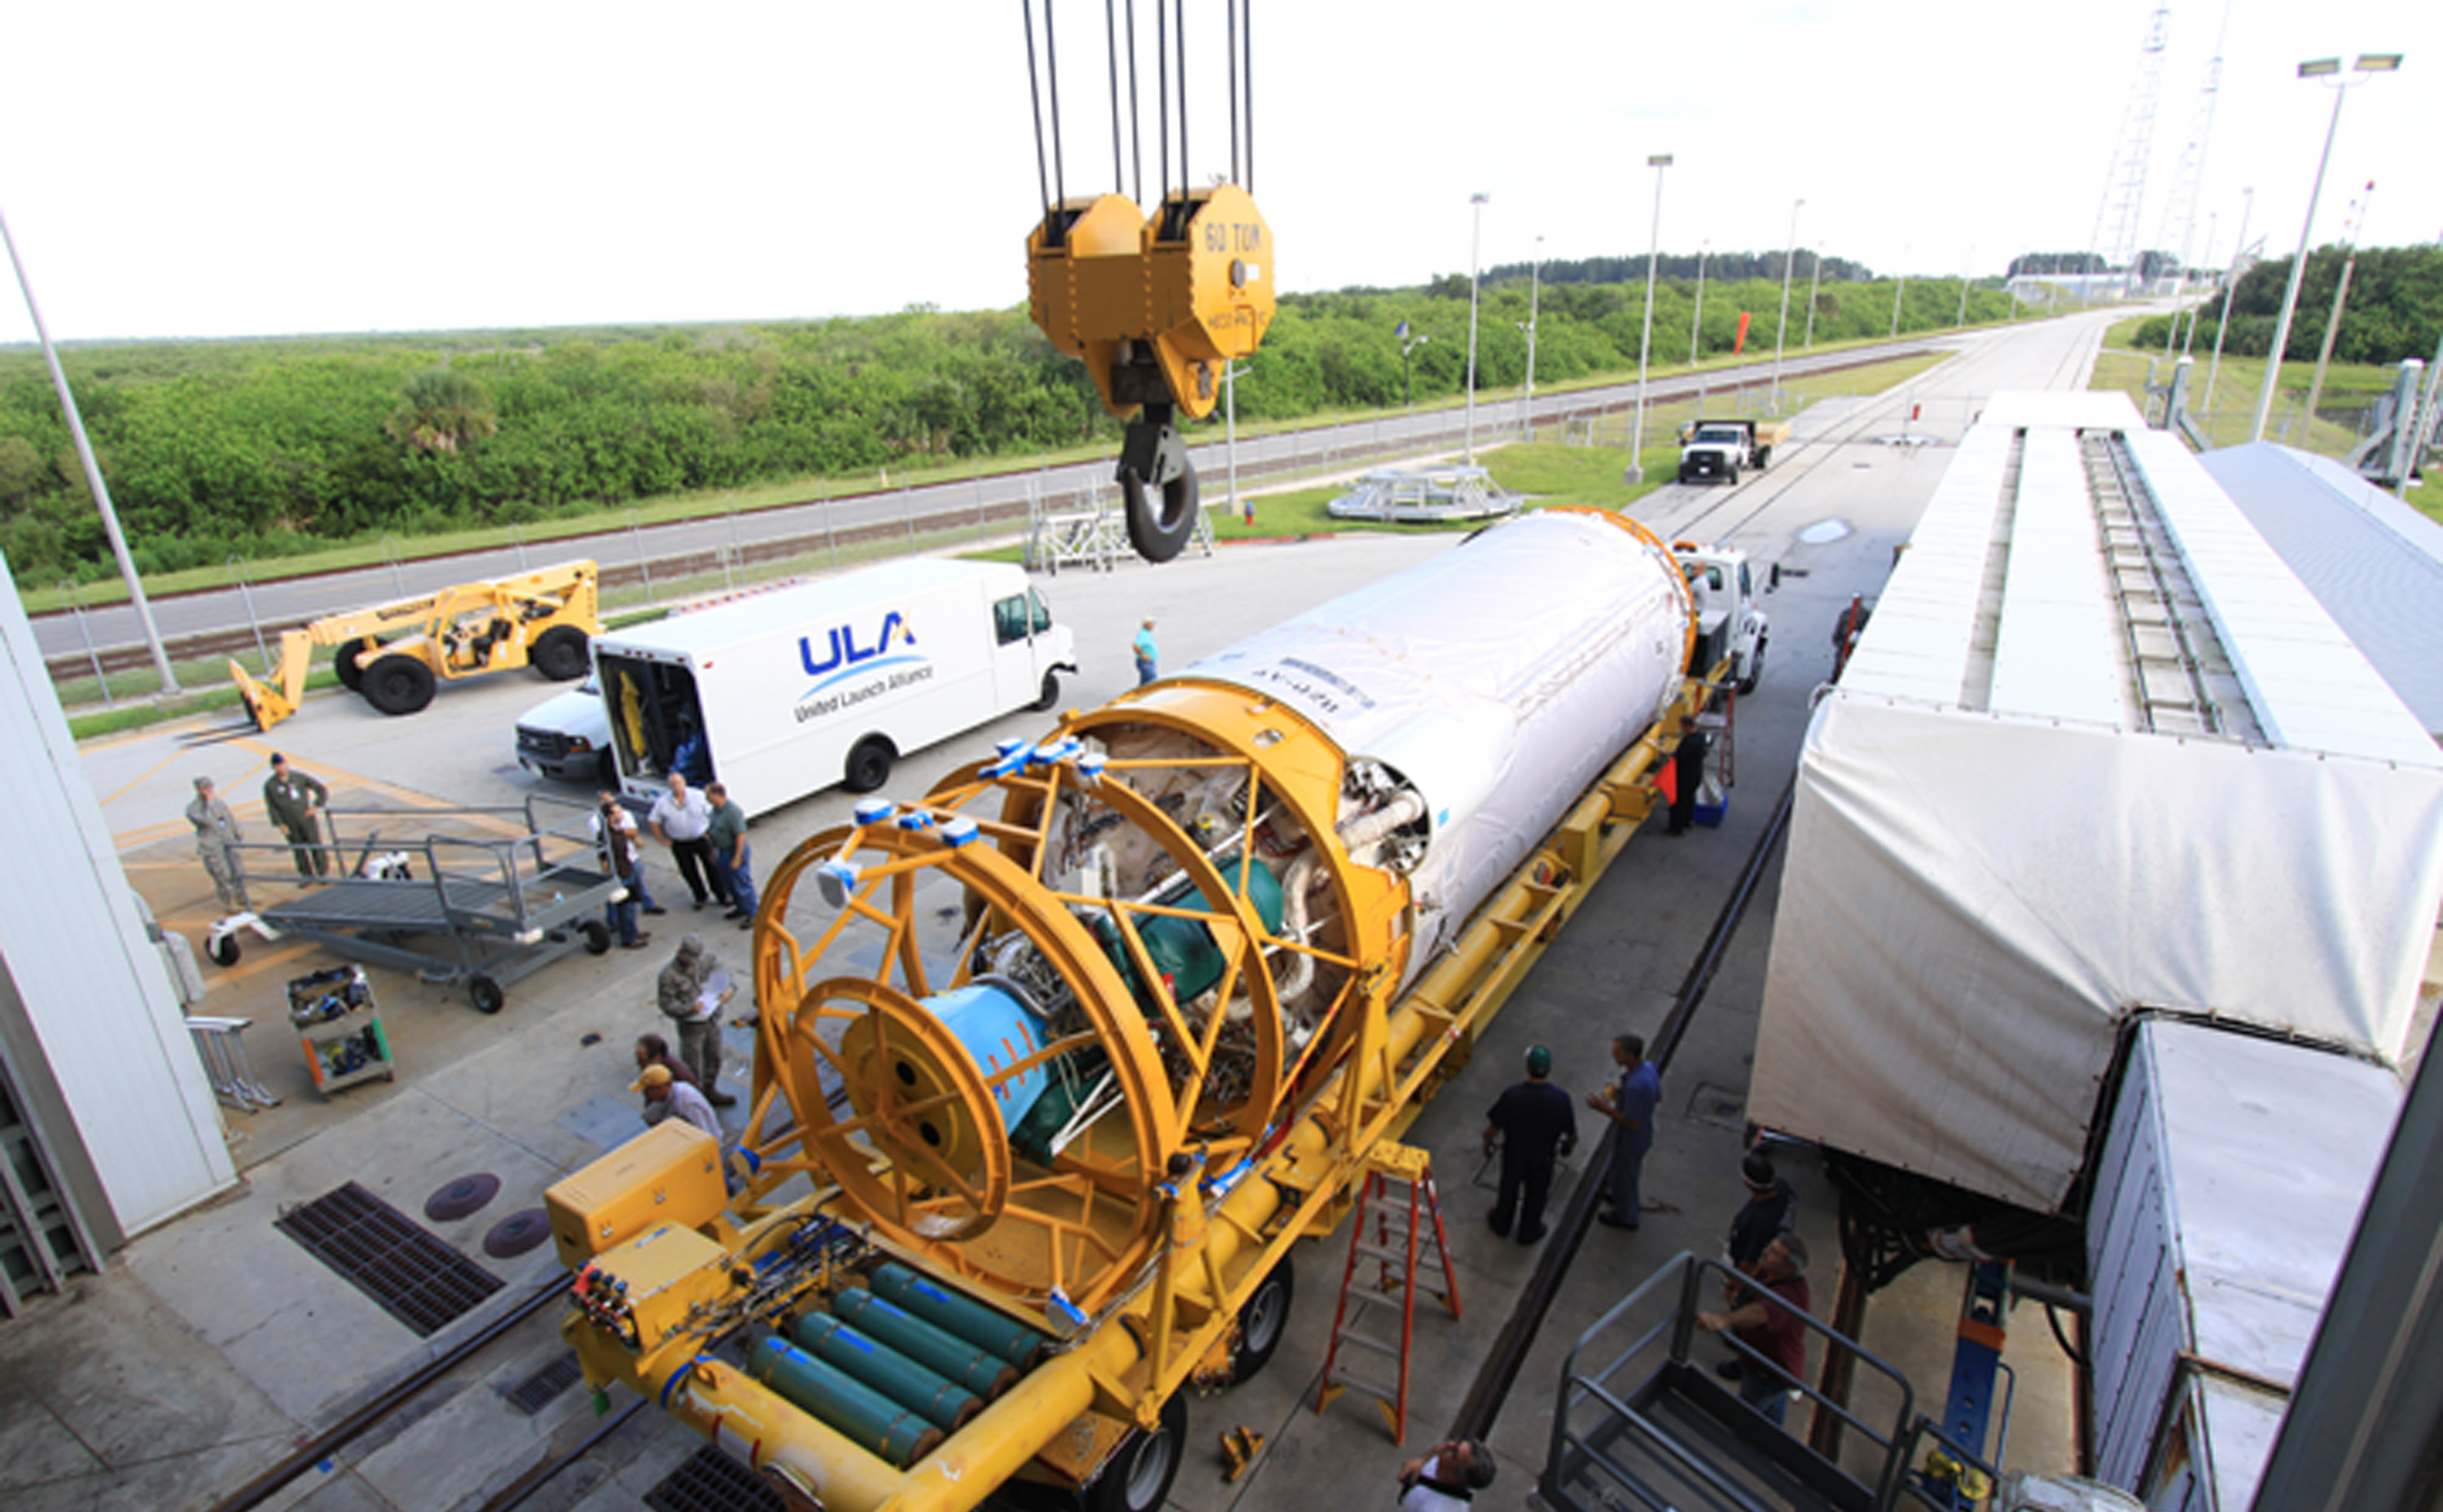 At Launch Complex 41 at Cape Canaveral Air Force Station in Florida, an overhead crane will be used to lift the Centaur upper stage for the United Launch Alliance Atlas V into the Vertical Integration Facility (VIF).